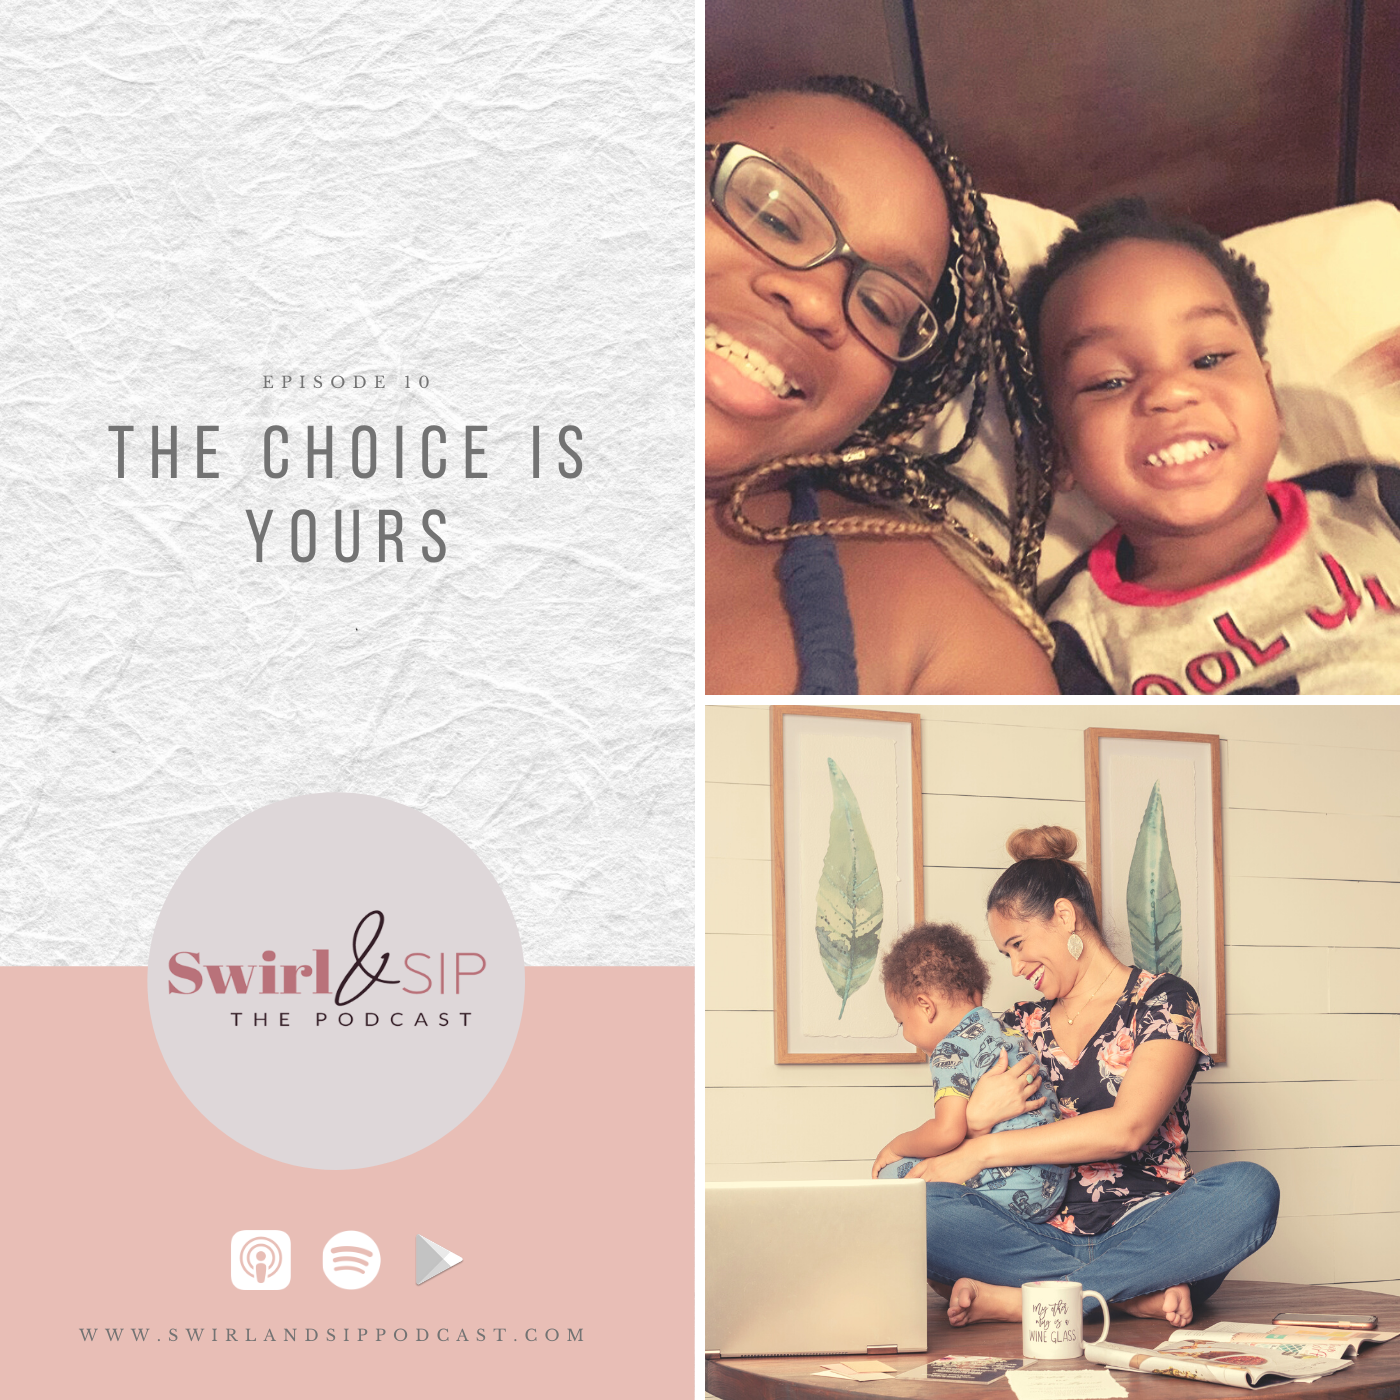 Cover Art for Episode 10 of the Swirl and Sip Podcast - The Choice Is Yours - Shara with her son, Sasha with her son